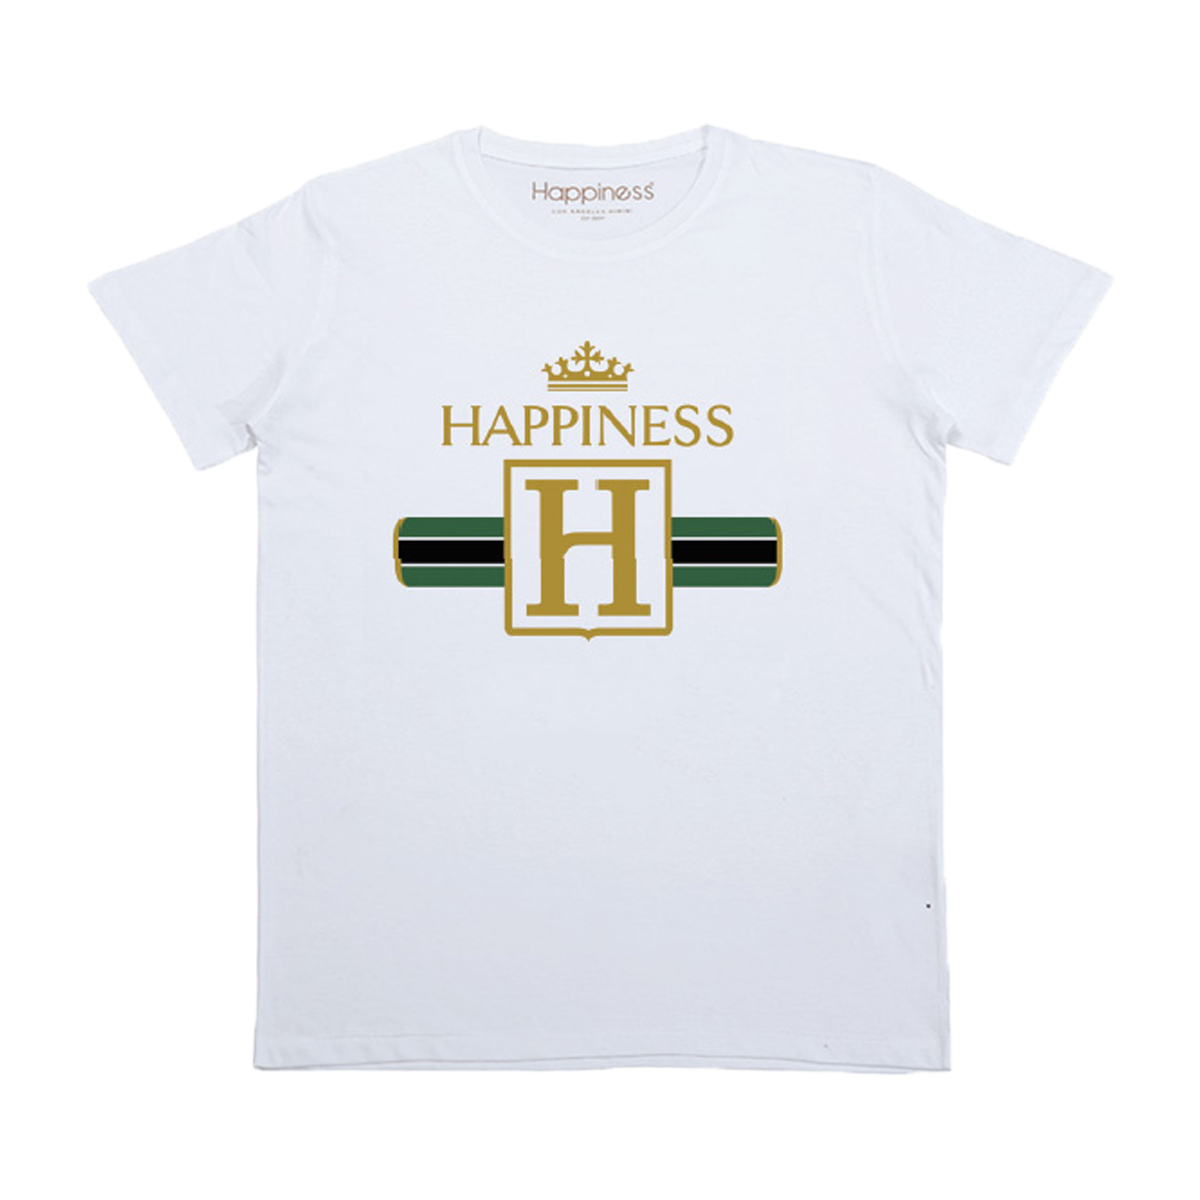 Happiness Short Sleeve Happiness T-Shirt in White